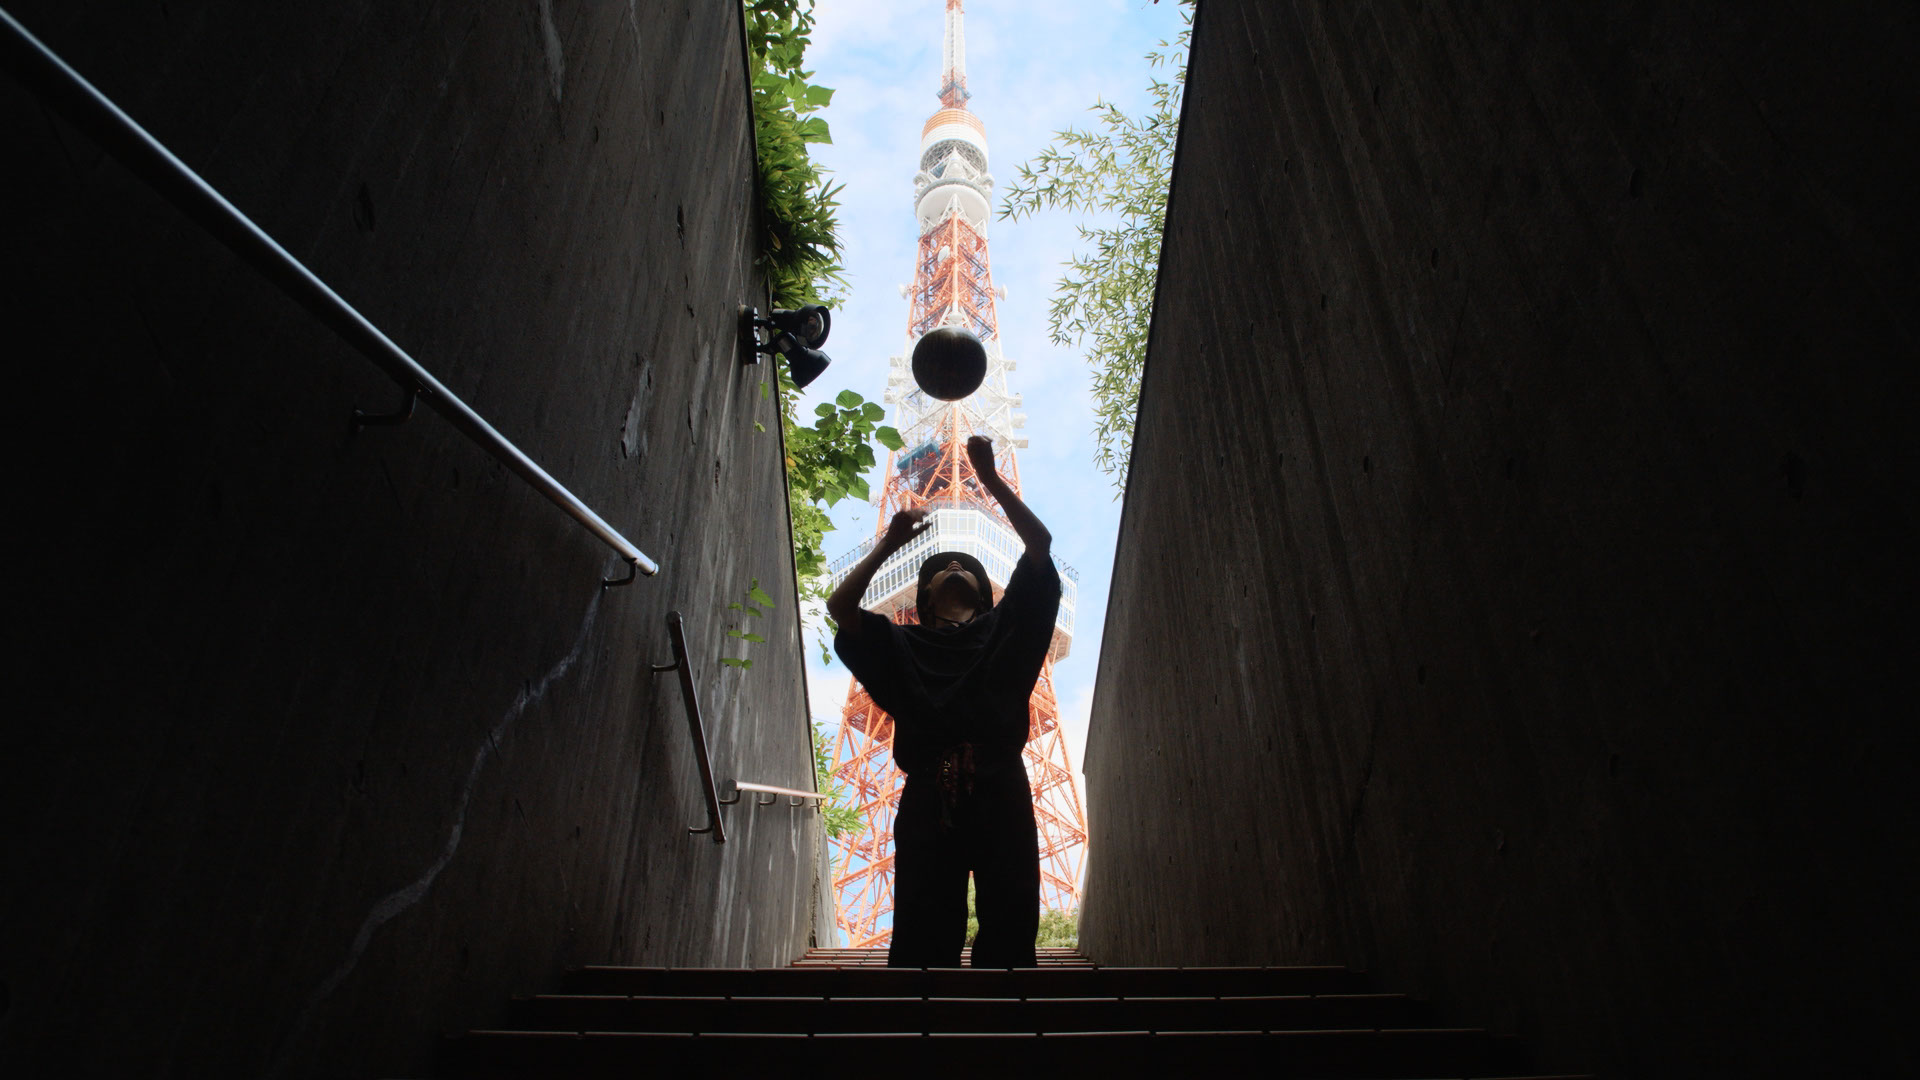 Basketball Cinematography in Japan